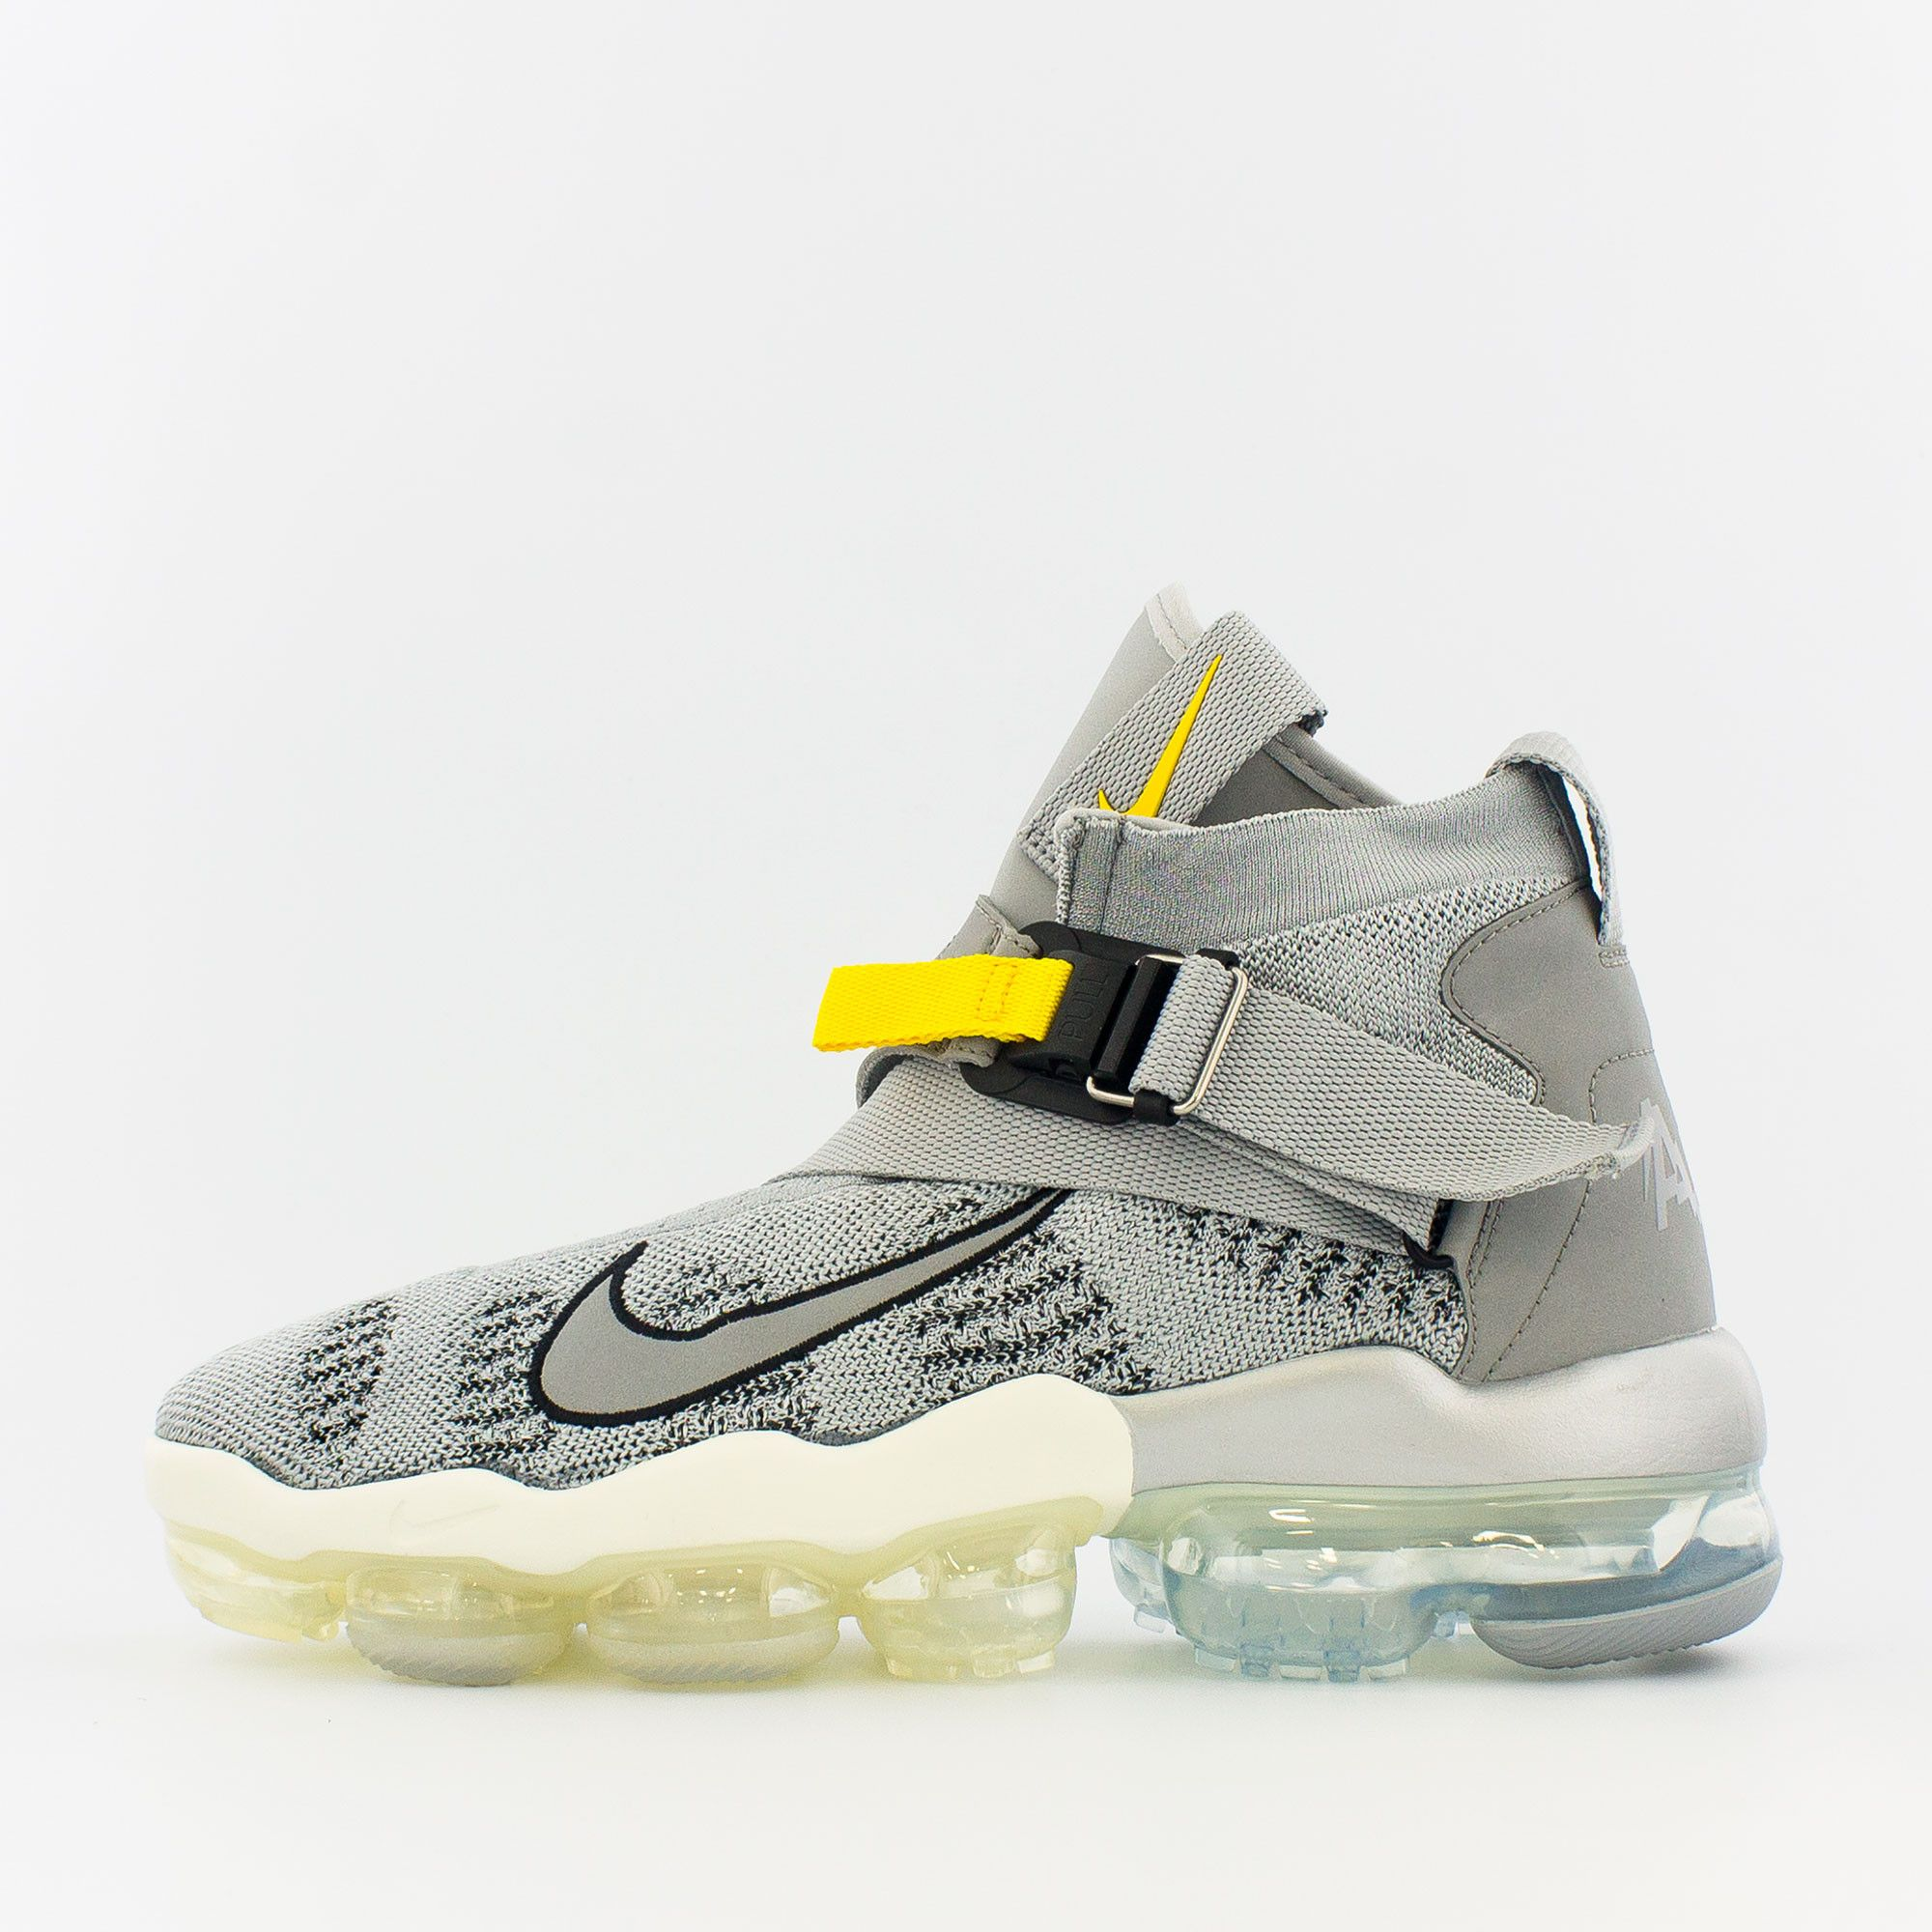 fc46b1a9765f The new Nike Vapormax Premier Flyknit draws influence from the late 90's  Air Zoom GP but steps up the game with the full Vapormax outsole.